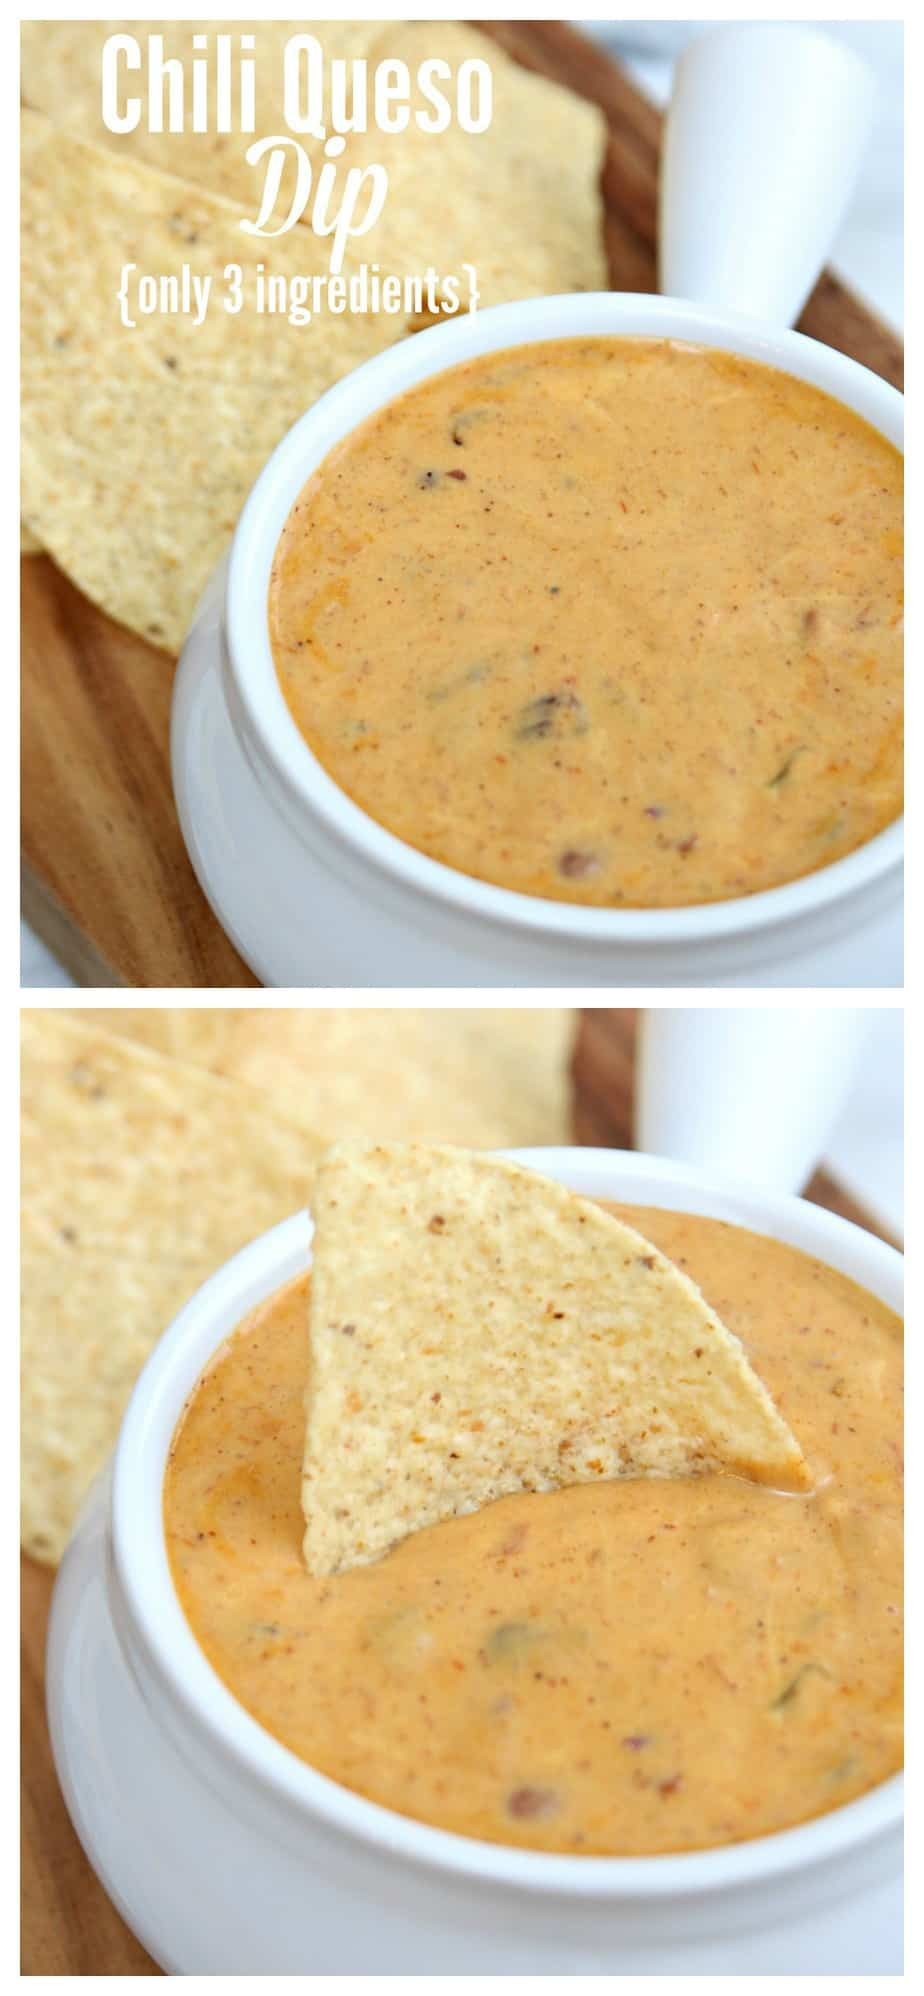 3 Ingredient Chili Queso Dip